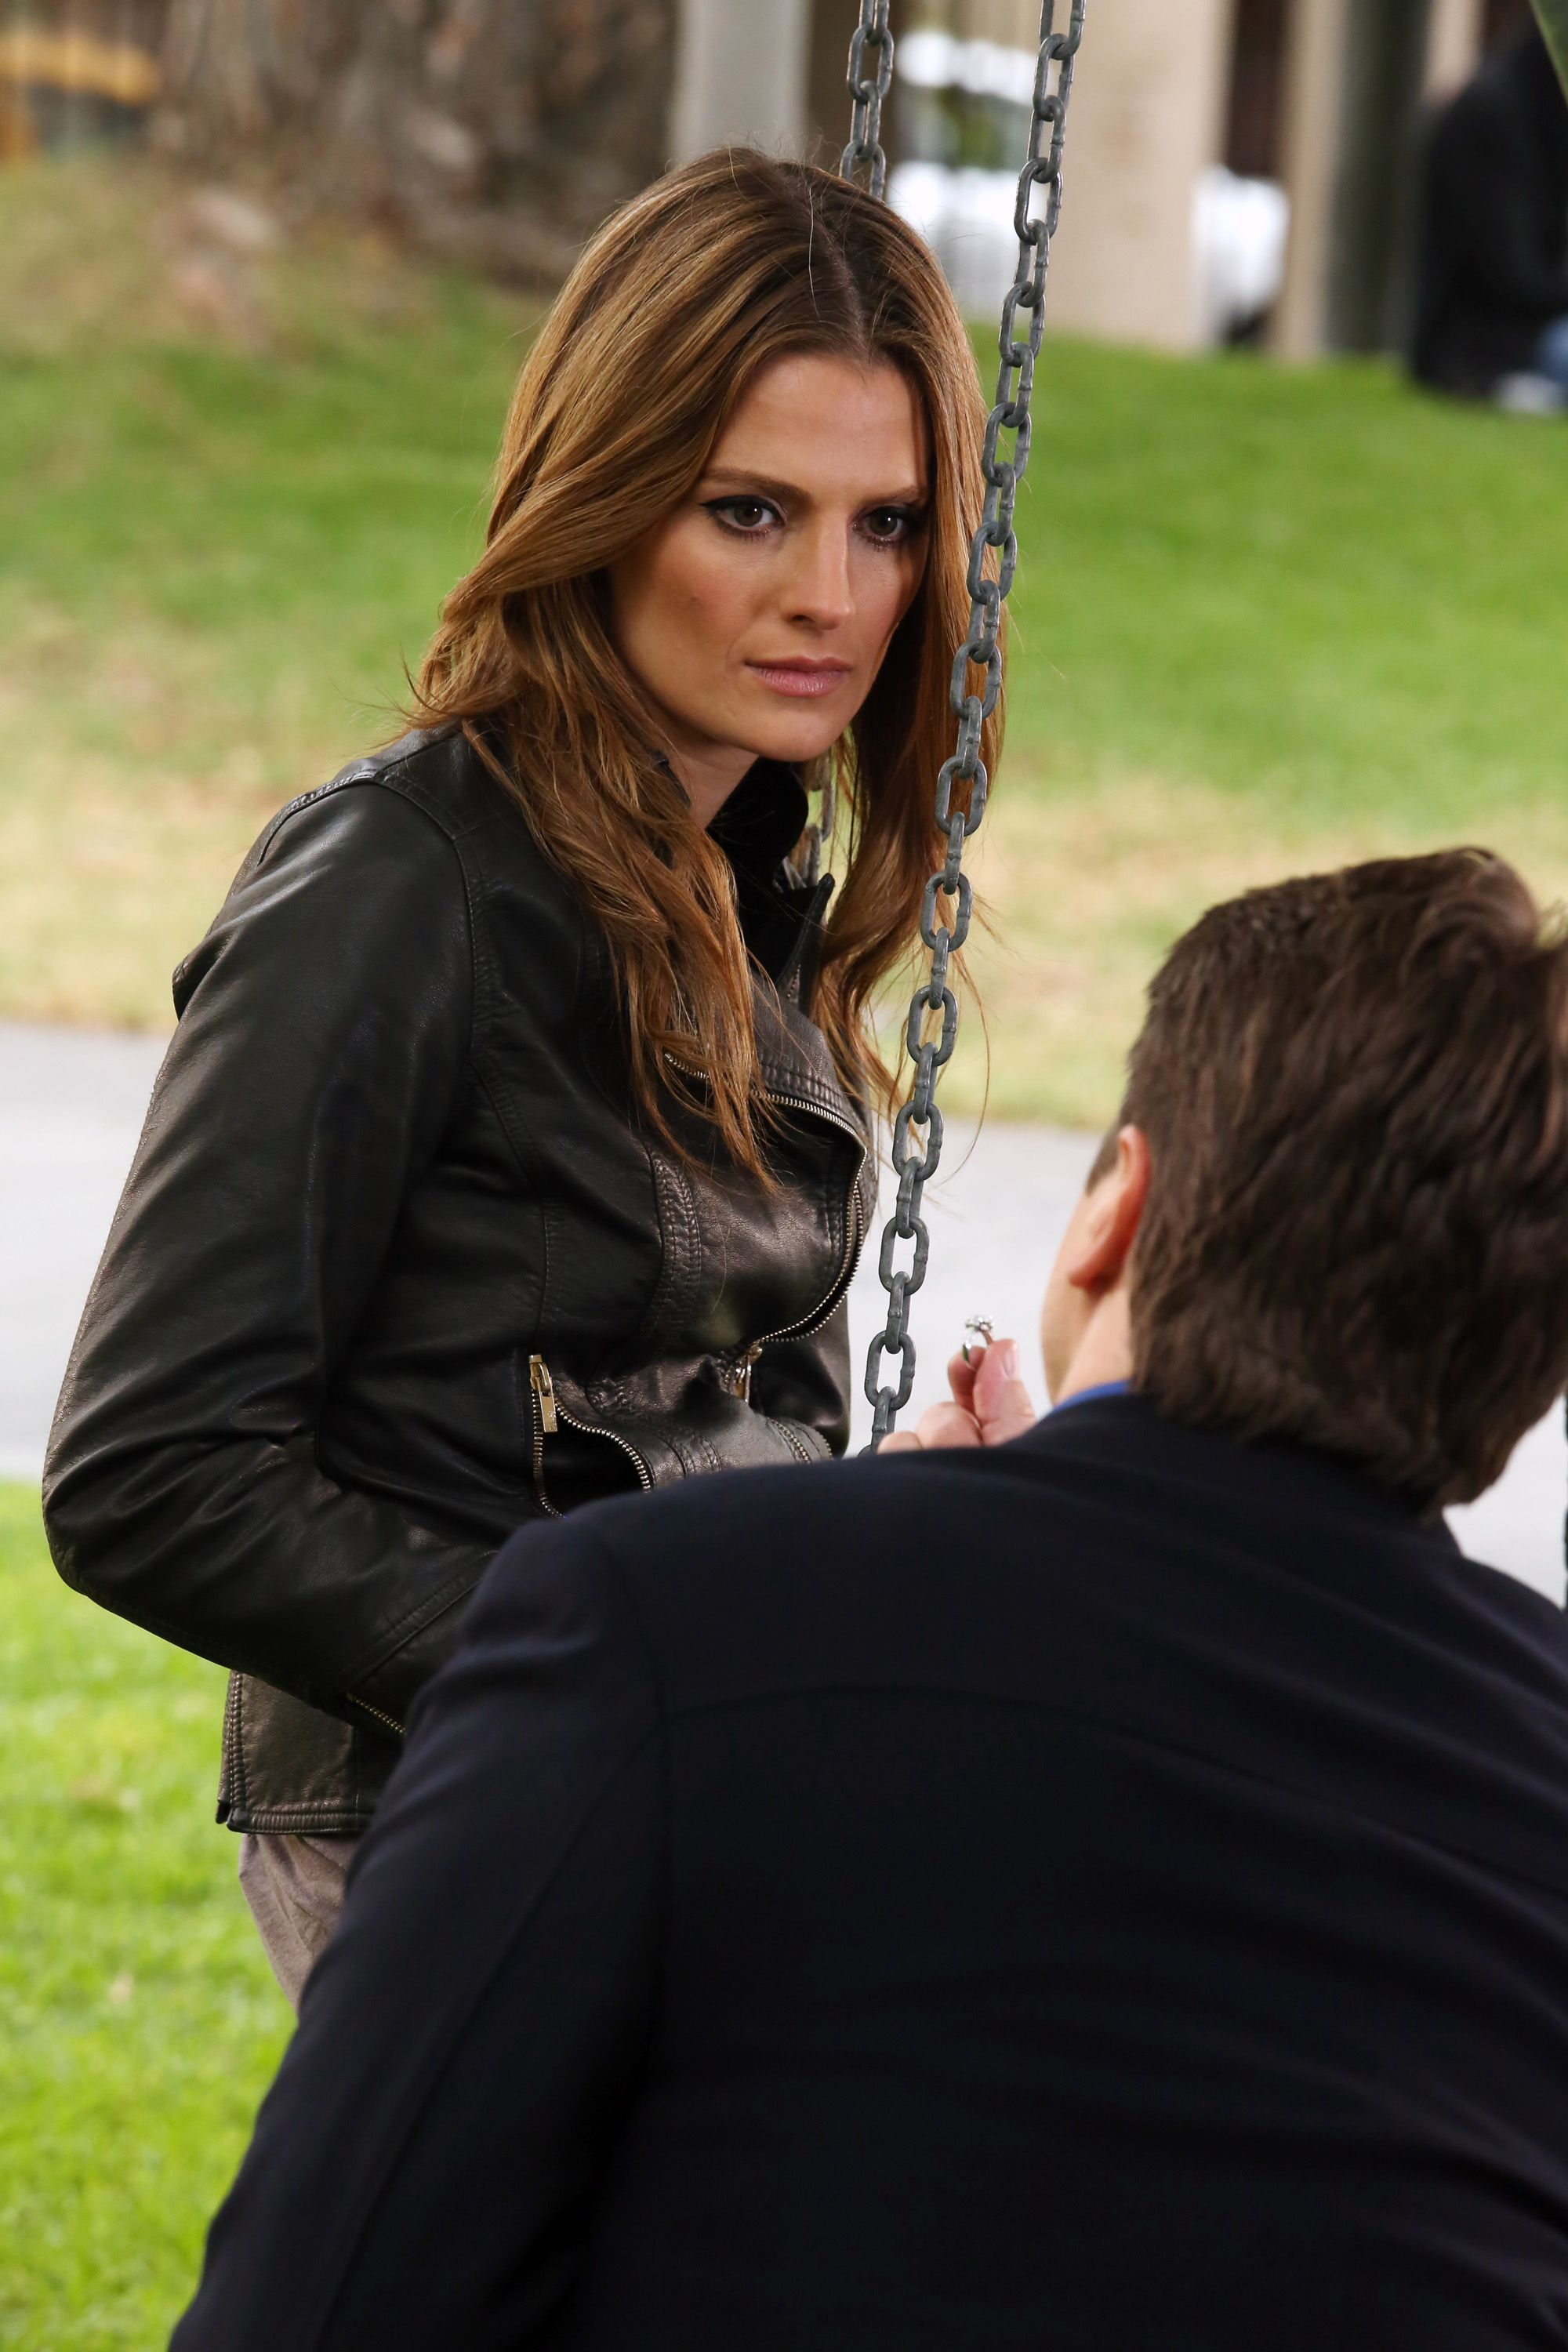 """I've said this once before but I'm going to say it again. I think it was perfect that Castle proposed at a swing set because in the episode """"Always"""" Beckett was on swing set when she realized she wanted to be with Castle."""